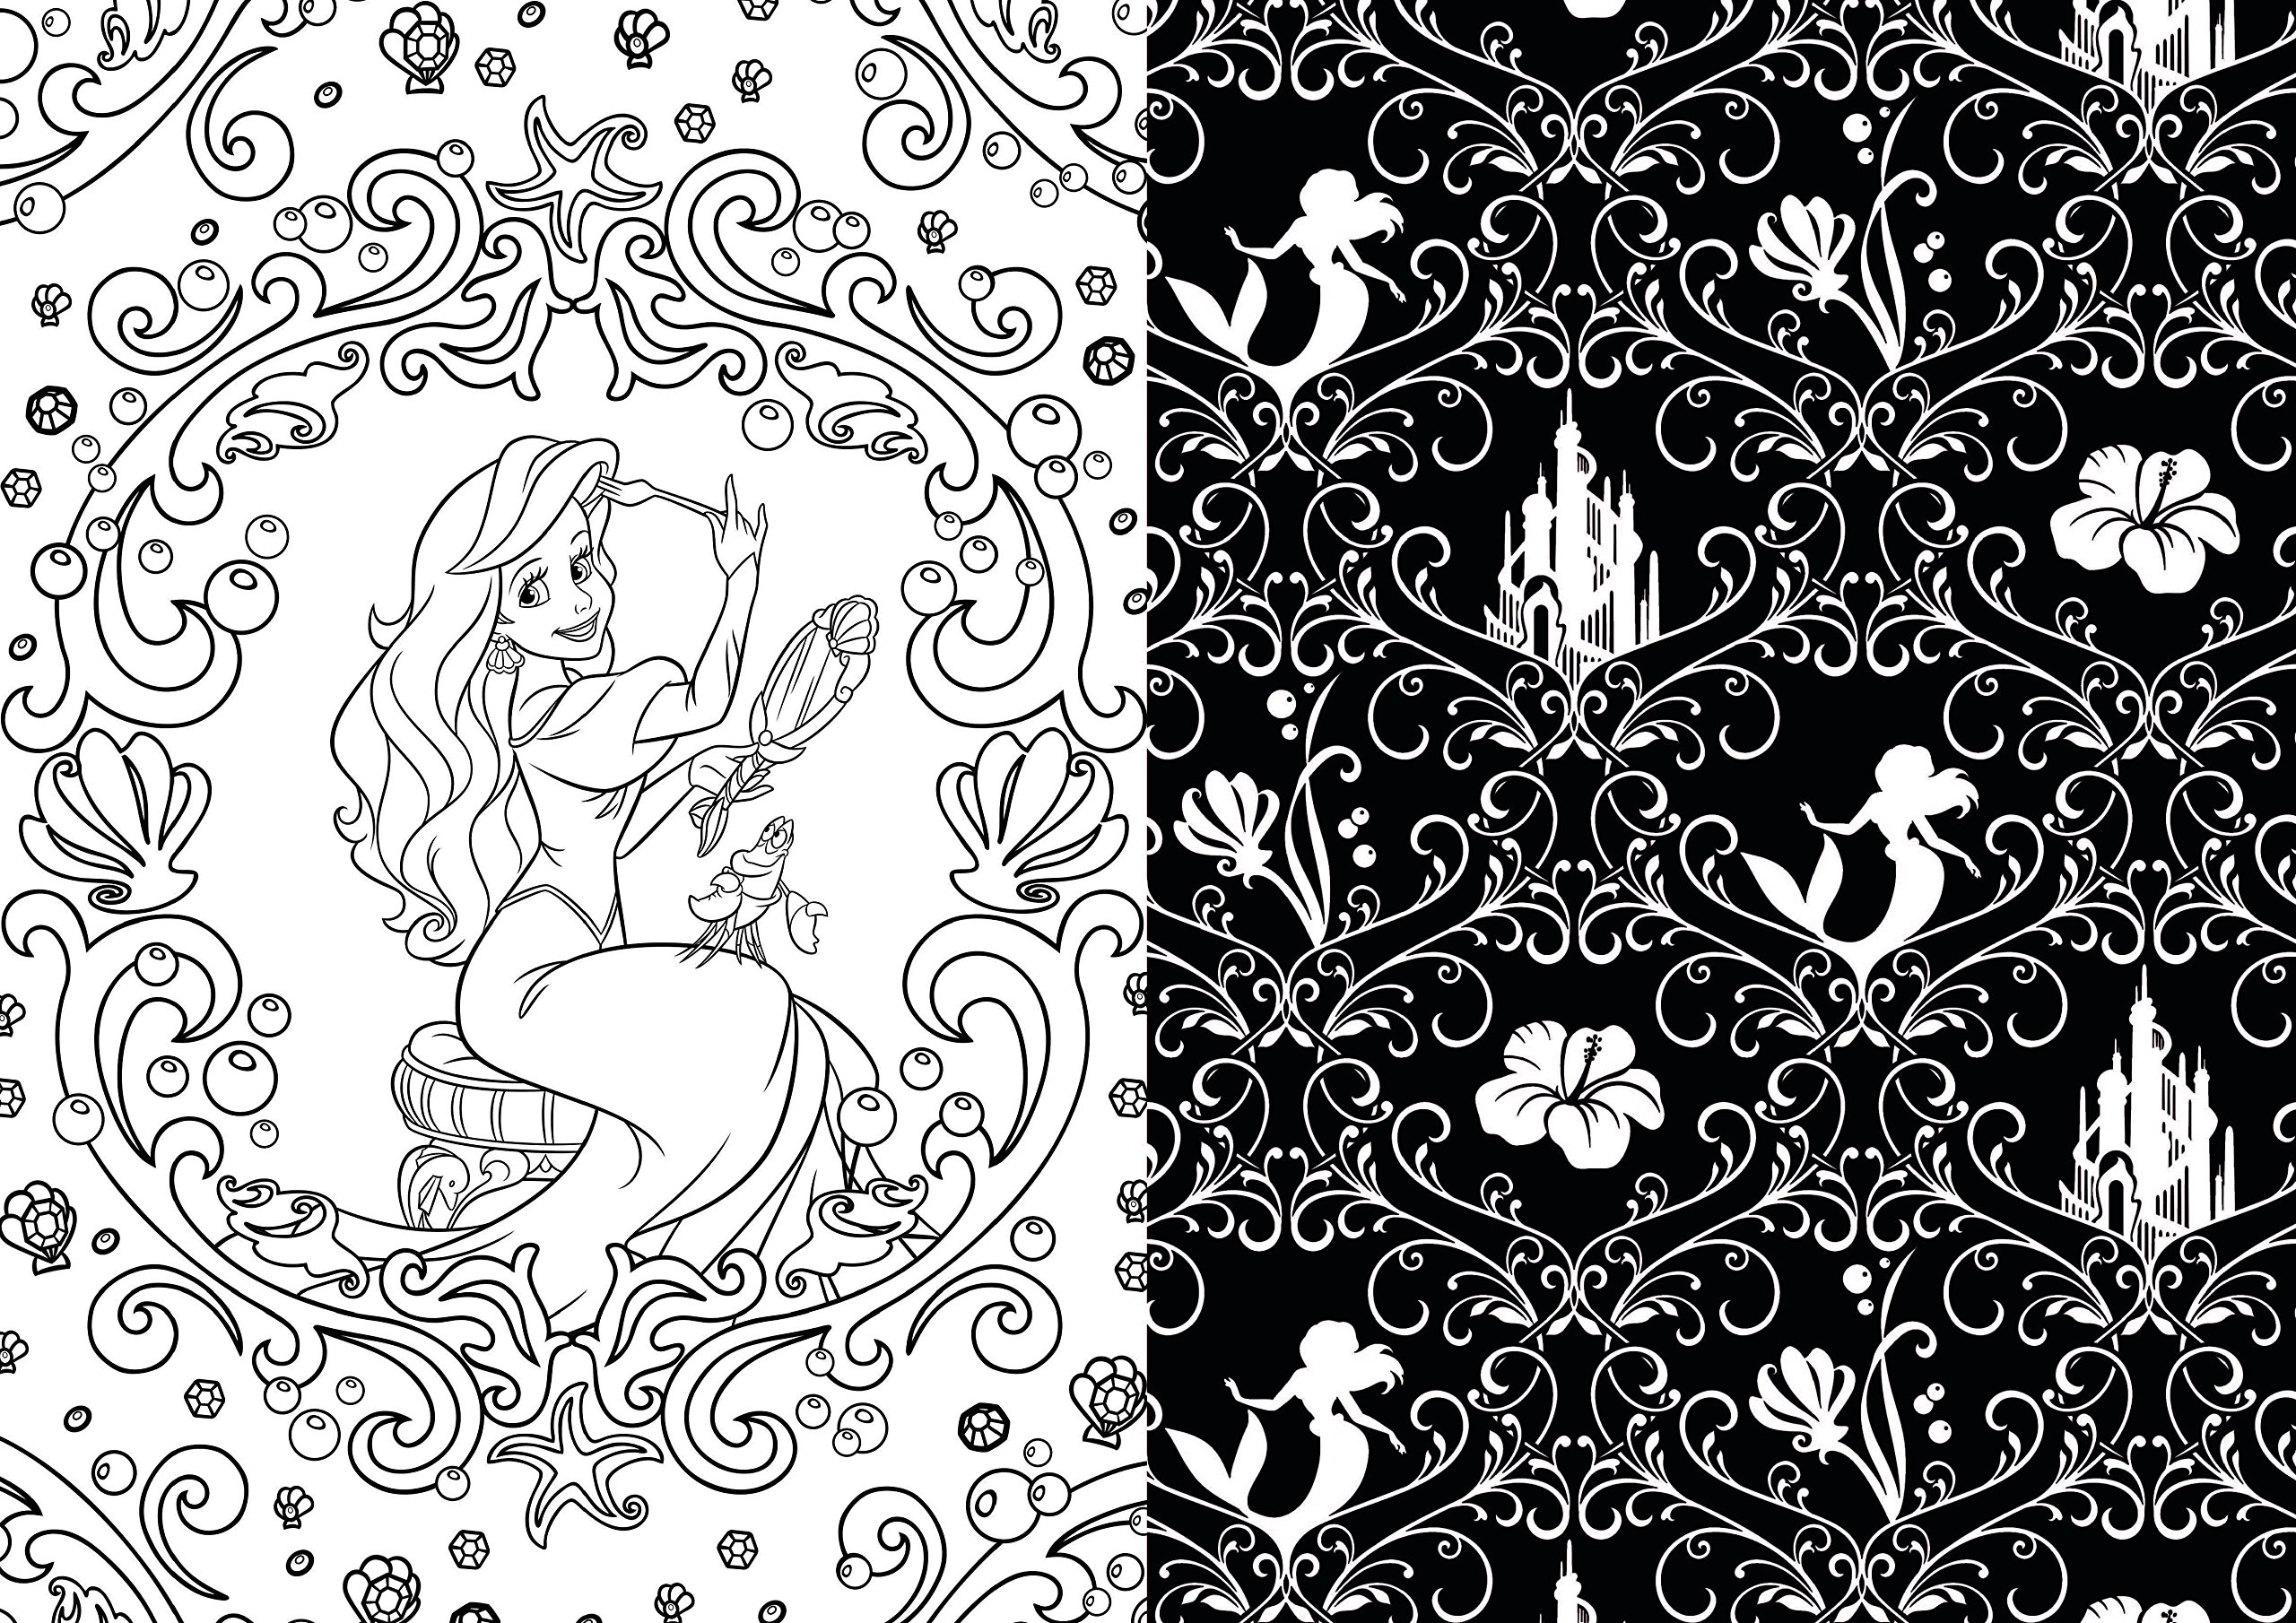 Disney princess coloring book for adults - Art Of Coloring Disney Princess 100 Images To Inspire Creativity And Relaxation Art Therapy Catherine Saunier Talec Anne Le Meur 0725961057404